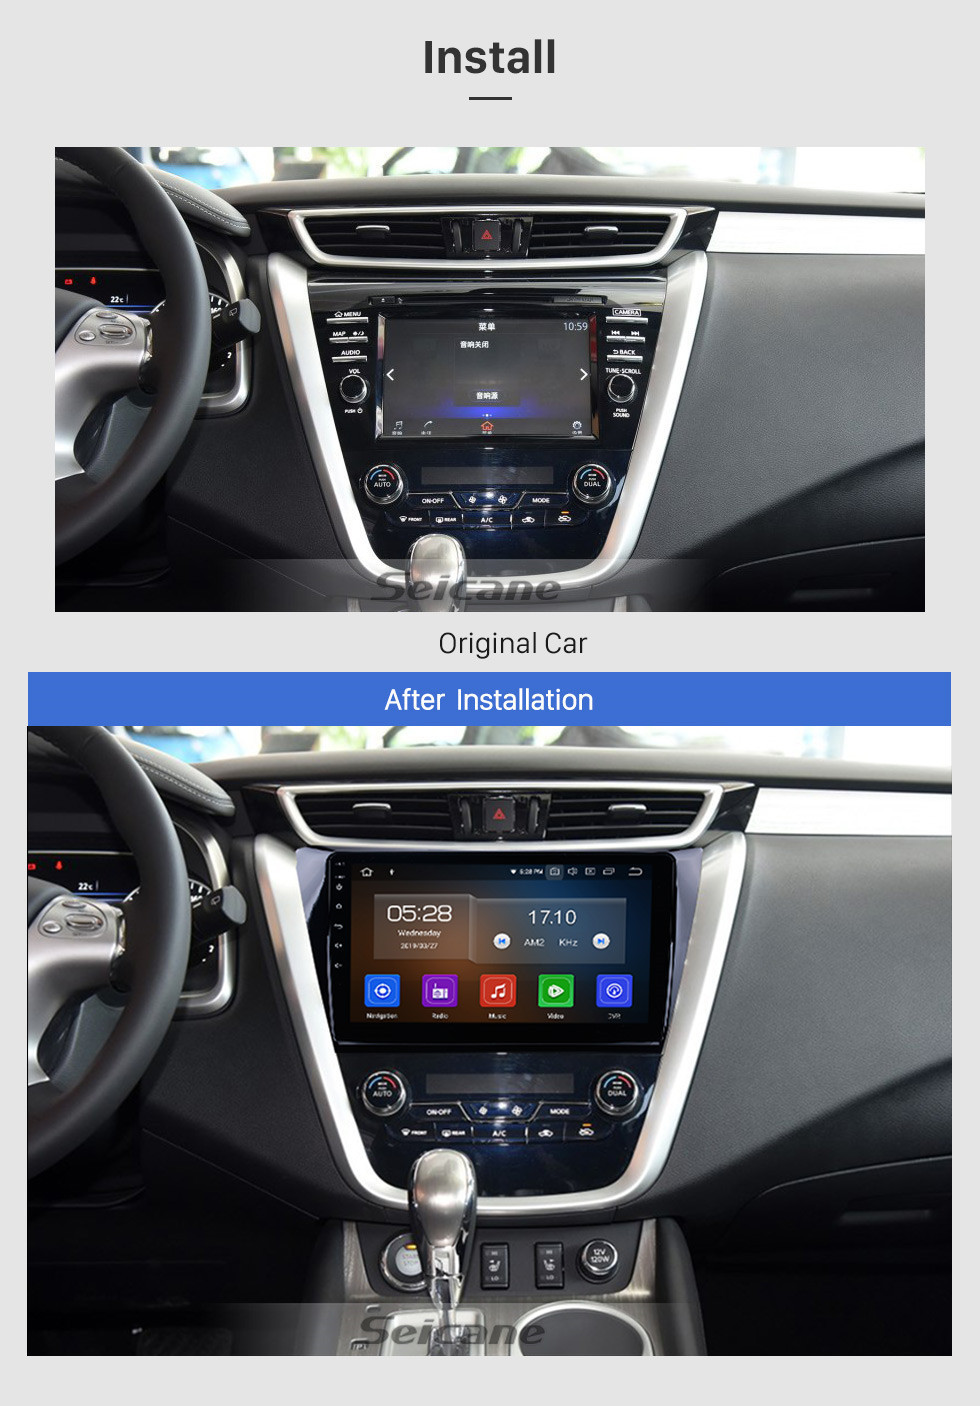 Seicane 10.1 inch HD Touchscreen Radio GPS Navigation system Android 10.0 for 2015 2016 2017 Nissan Murano Support Bluetooth 3G/4G WIFI OBD2 USB Mirror Link Steering Wheel Control